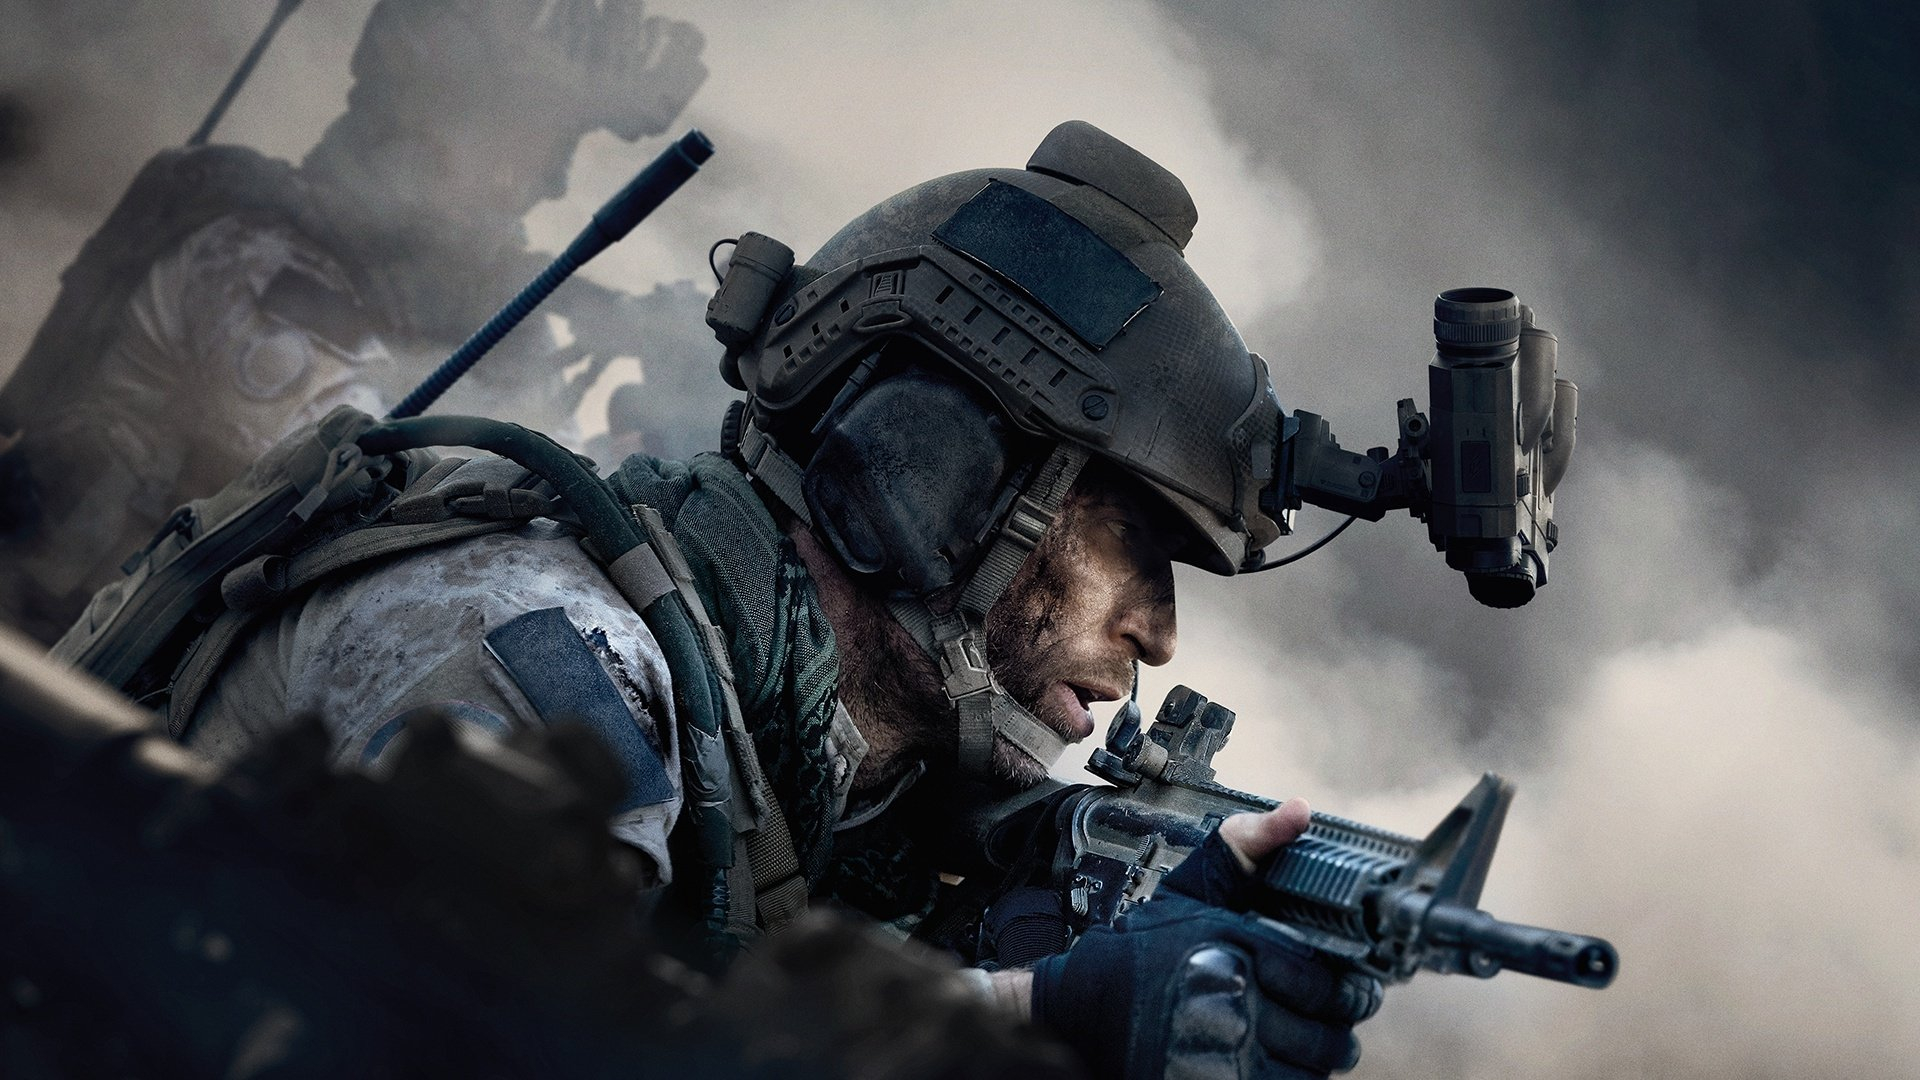 Call of Duty: Modern Warfare Datamine Suggests Dozens of New Maps and Game Modes Incoming Header Image